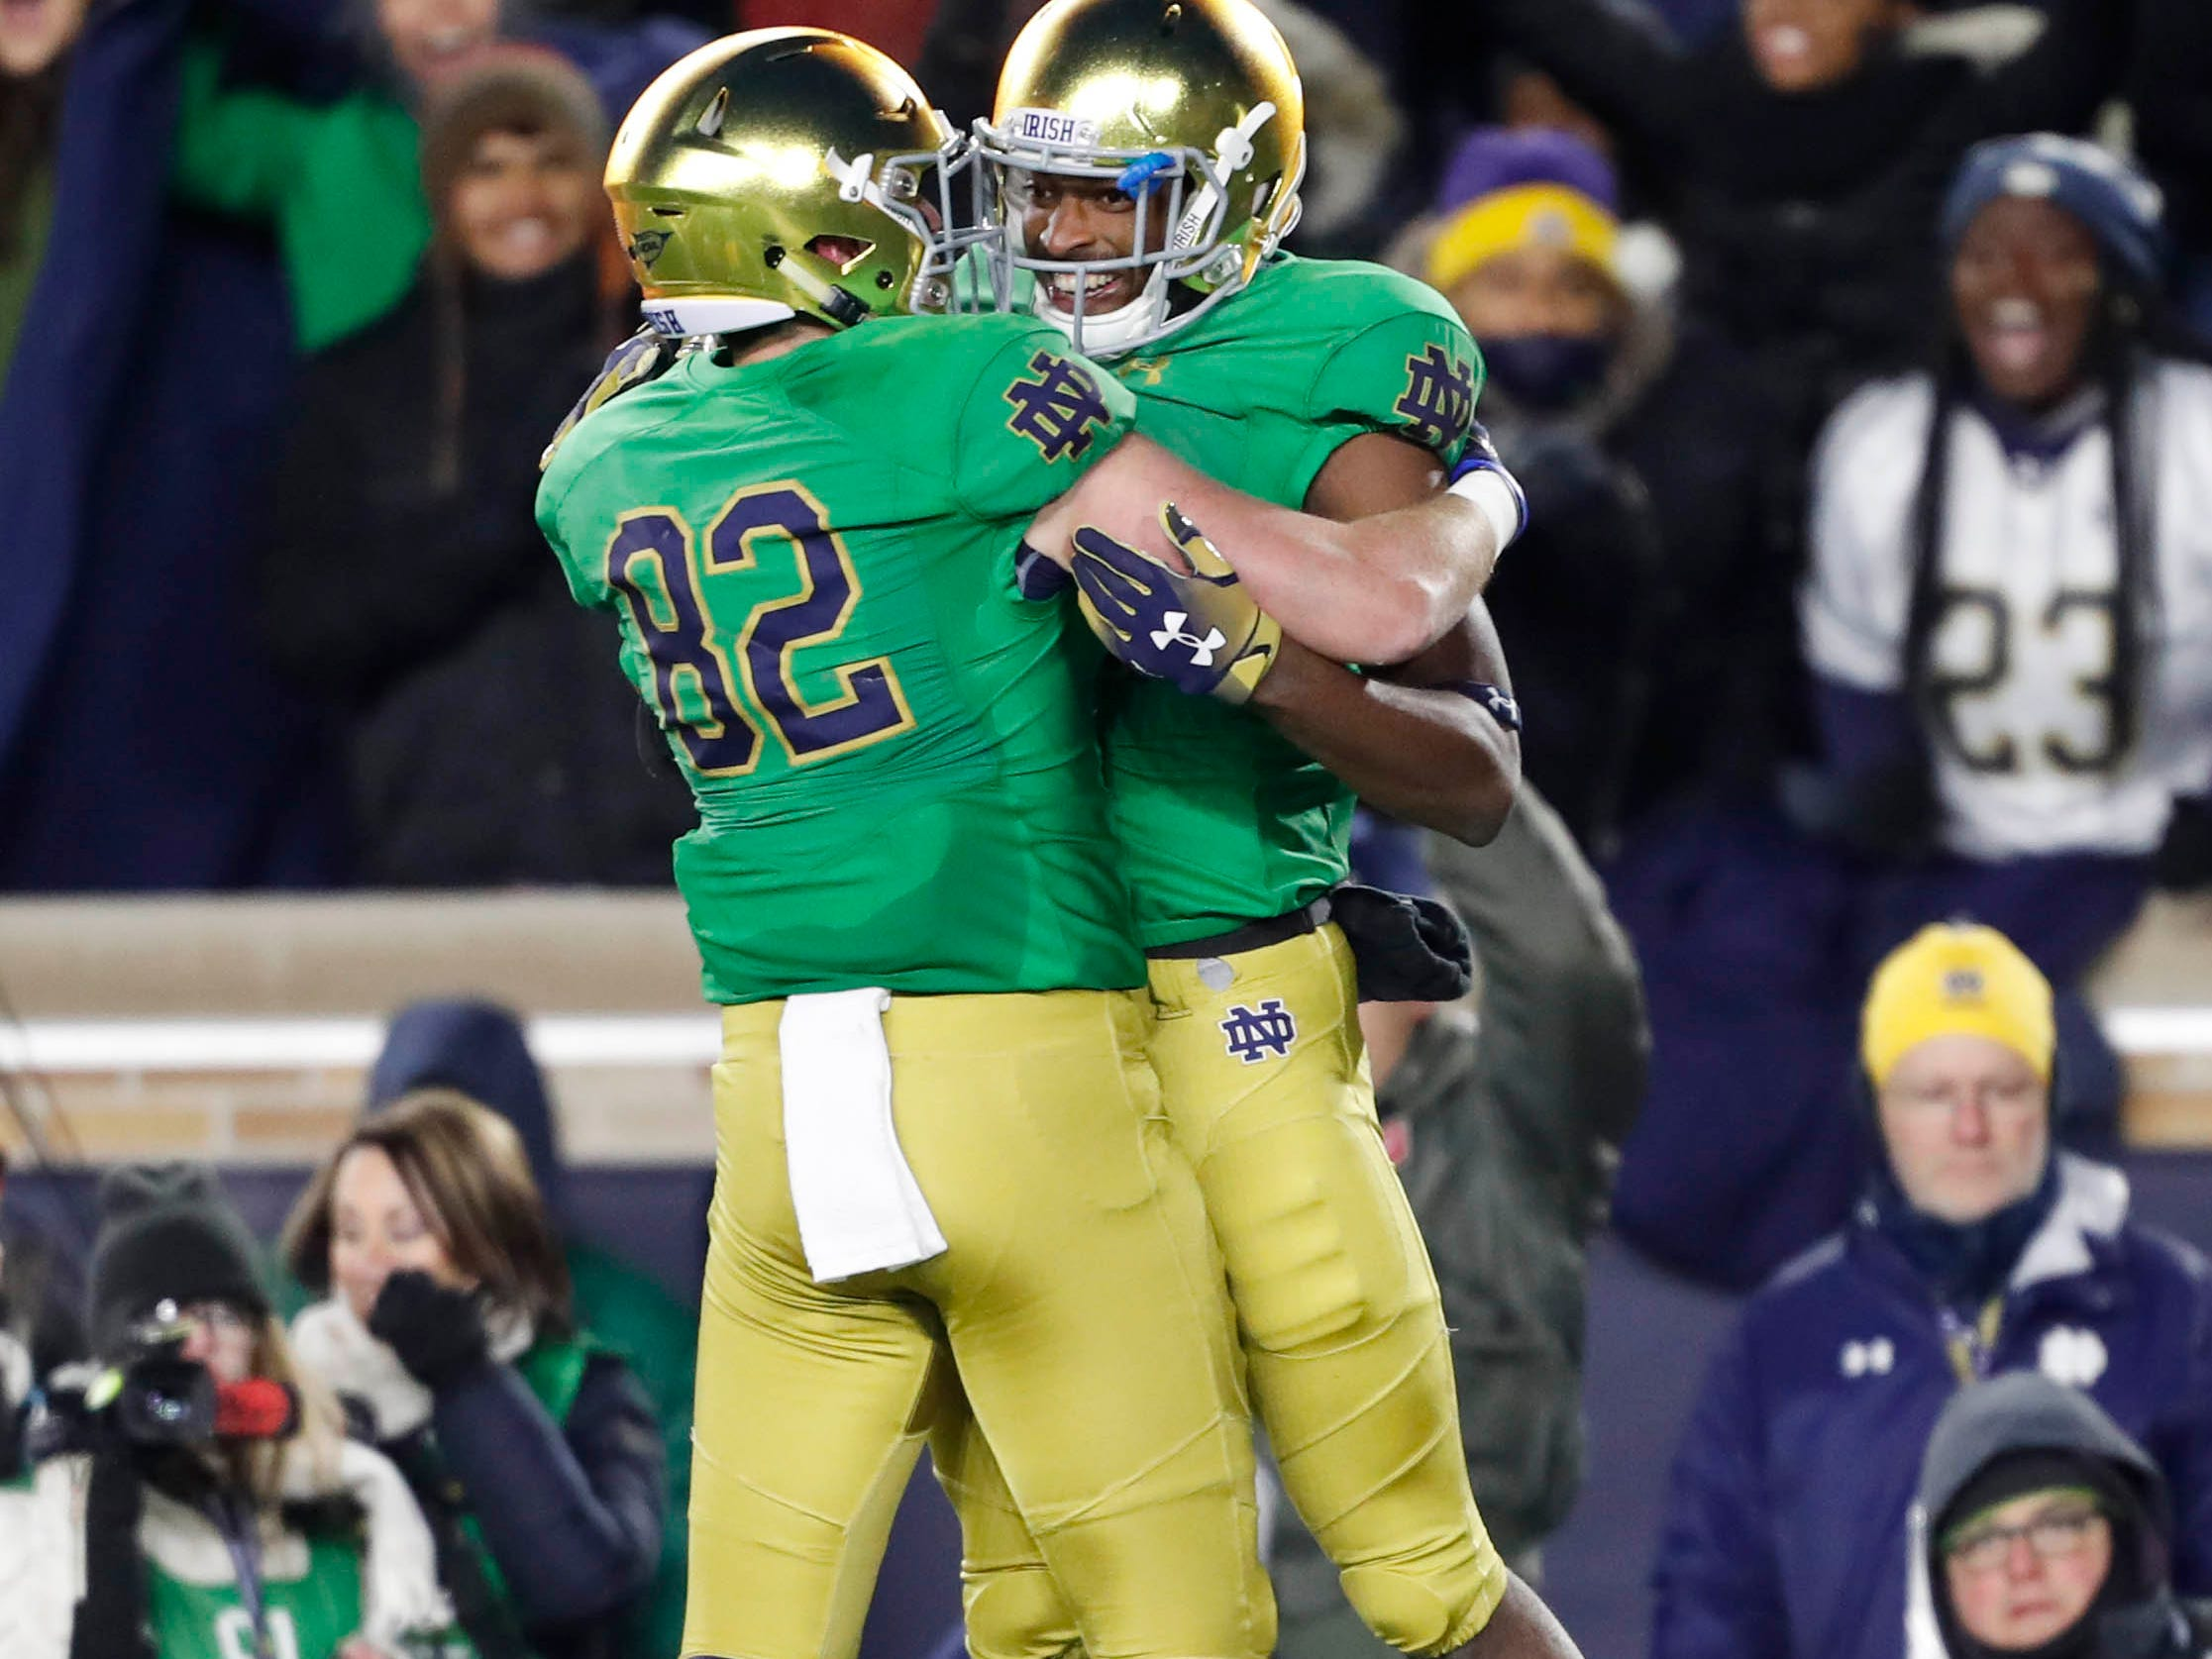 Nov 10, 2018; South Bend, IN, USA; Notre Dame Fighting Irish wide receiver Miles Boykin (81) is congratulated by tight end Nic Weishar (82) after catching a touchdown pass in the end zone against the Florida State Seminoles during the first quarter at Notre Dame Stadium. Mandatory Credit: Brian Spurlock-USA TODAY Sports